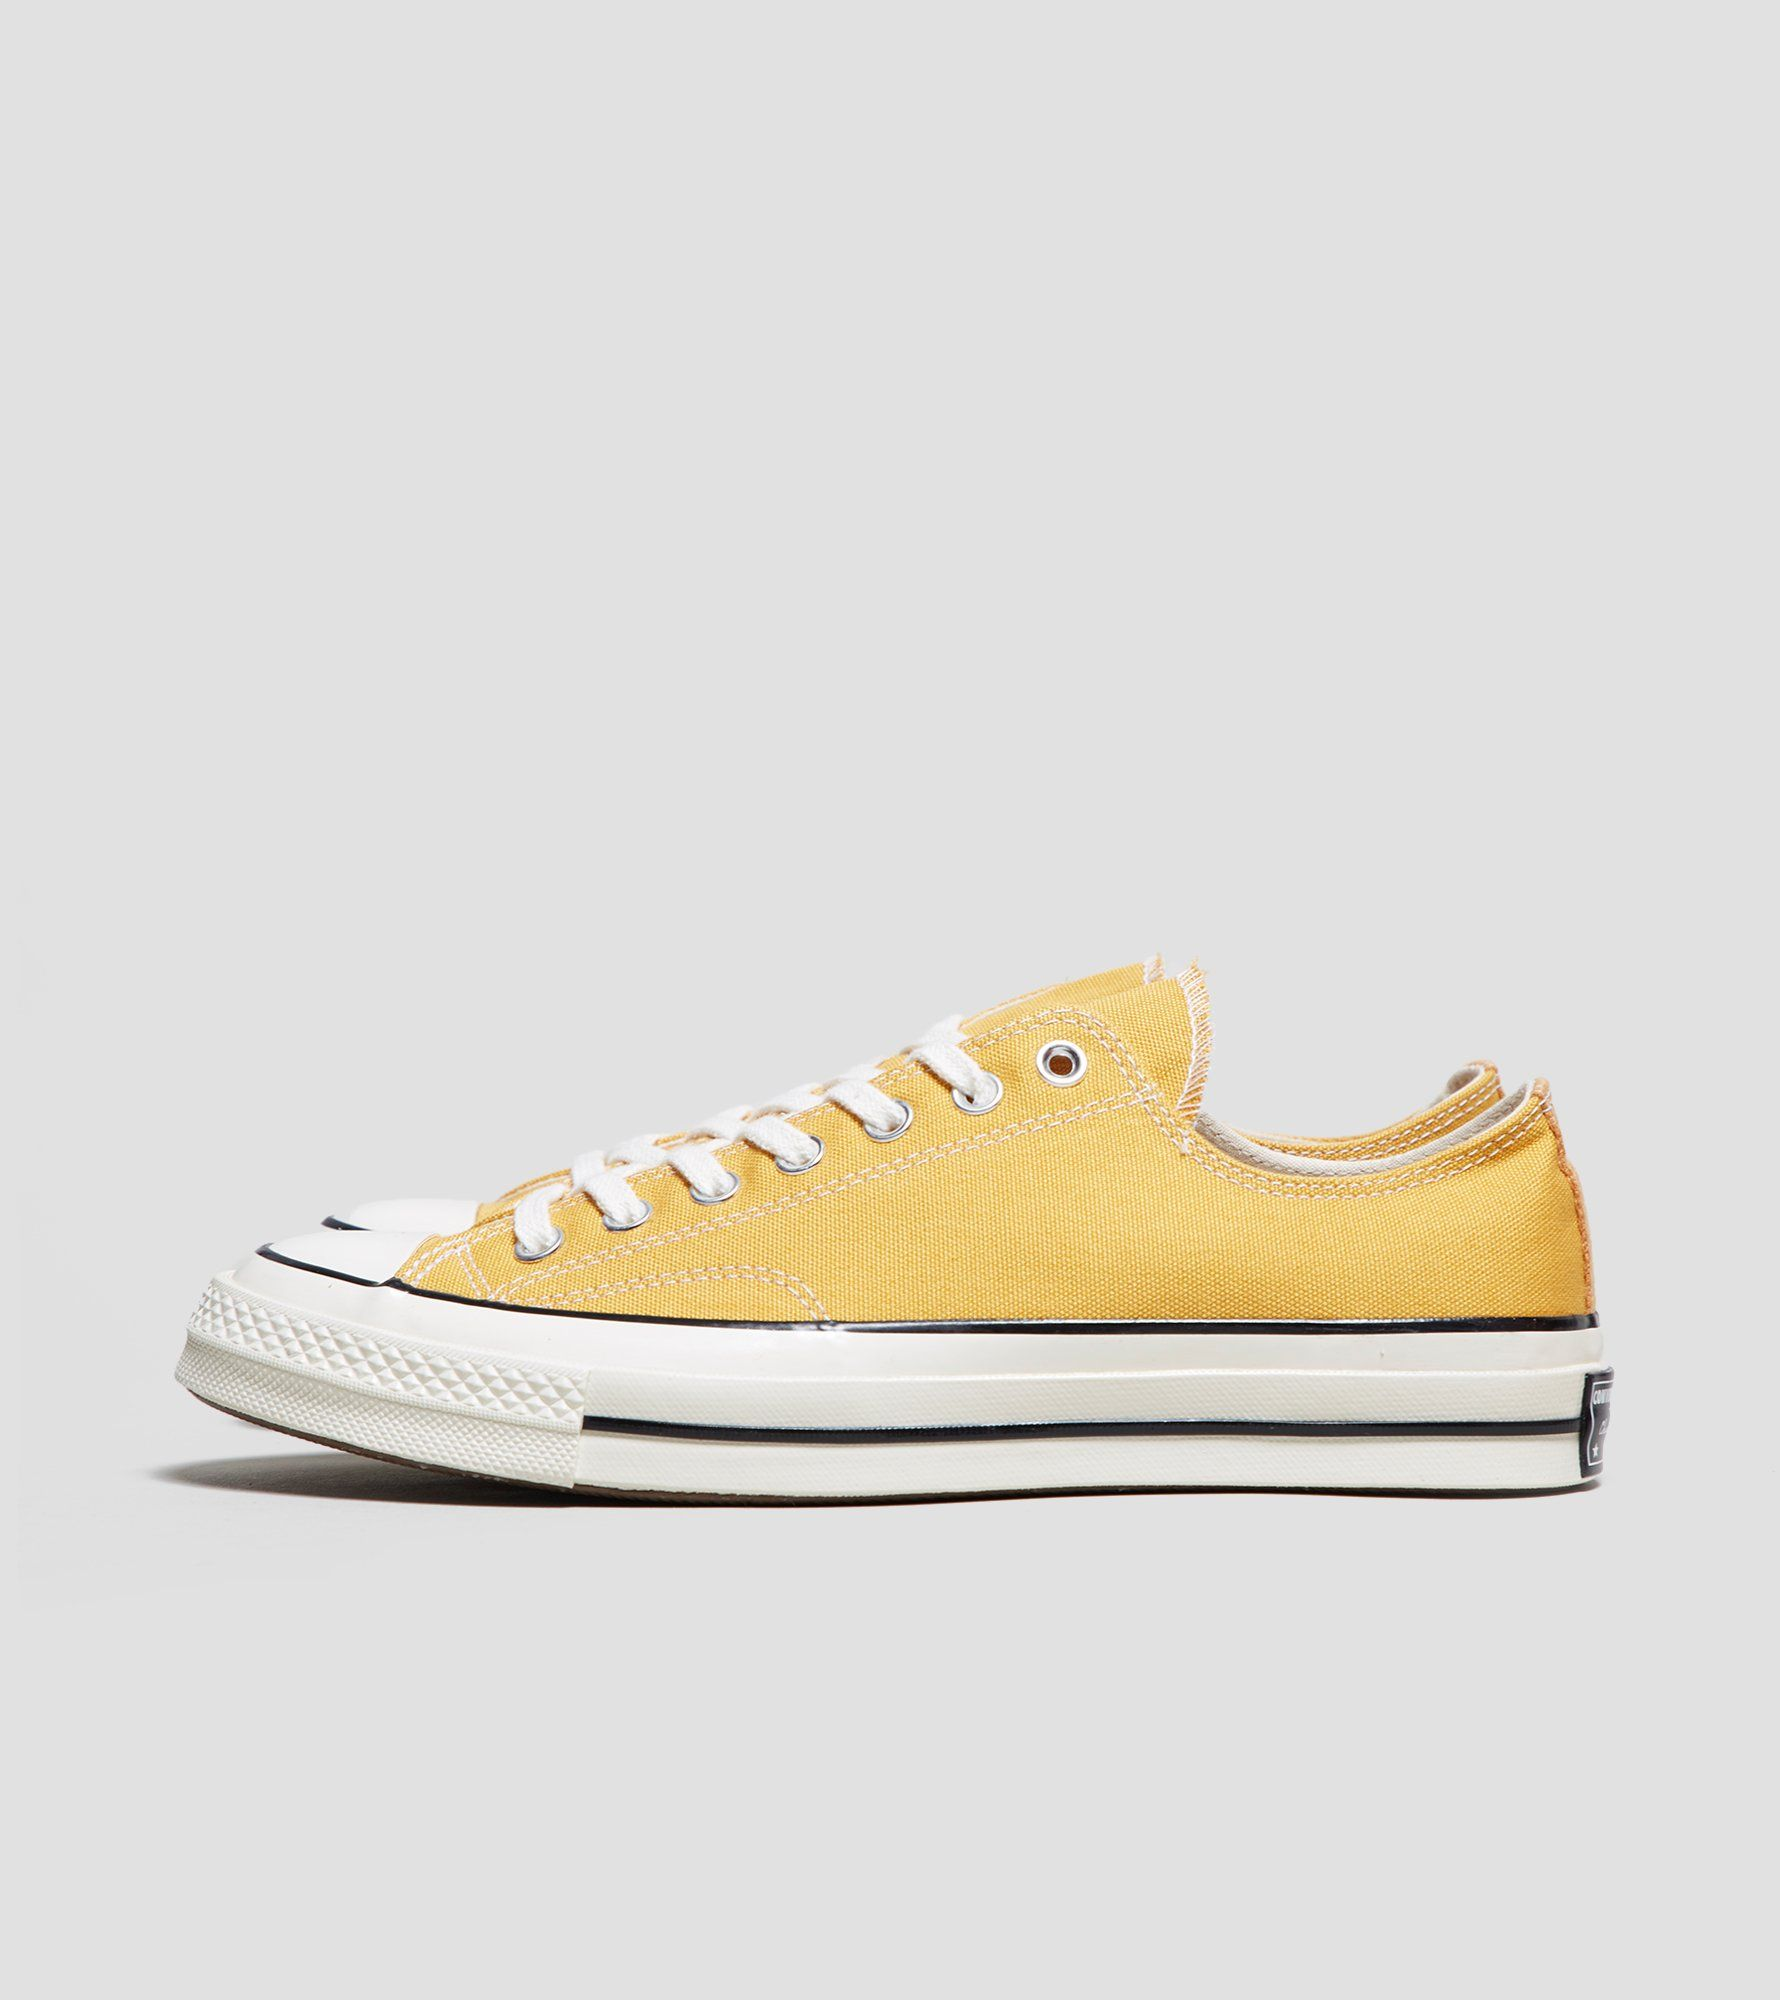 Converse All Star 70s Ox Low